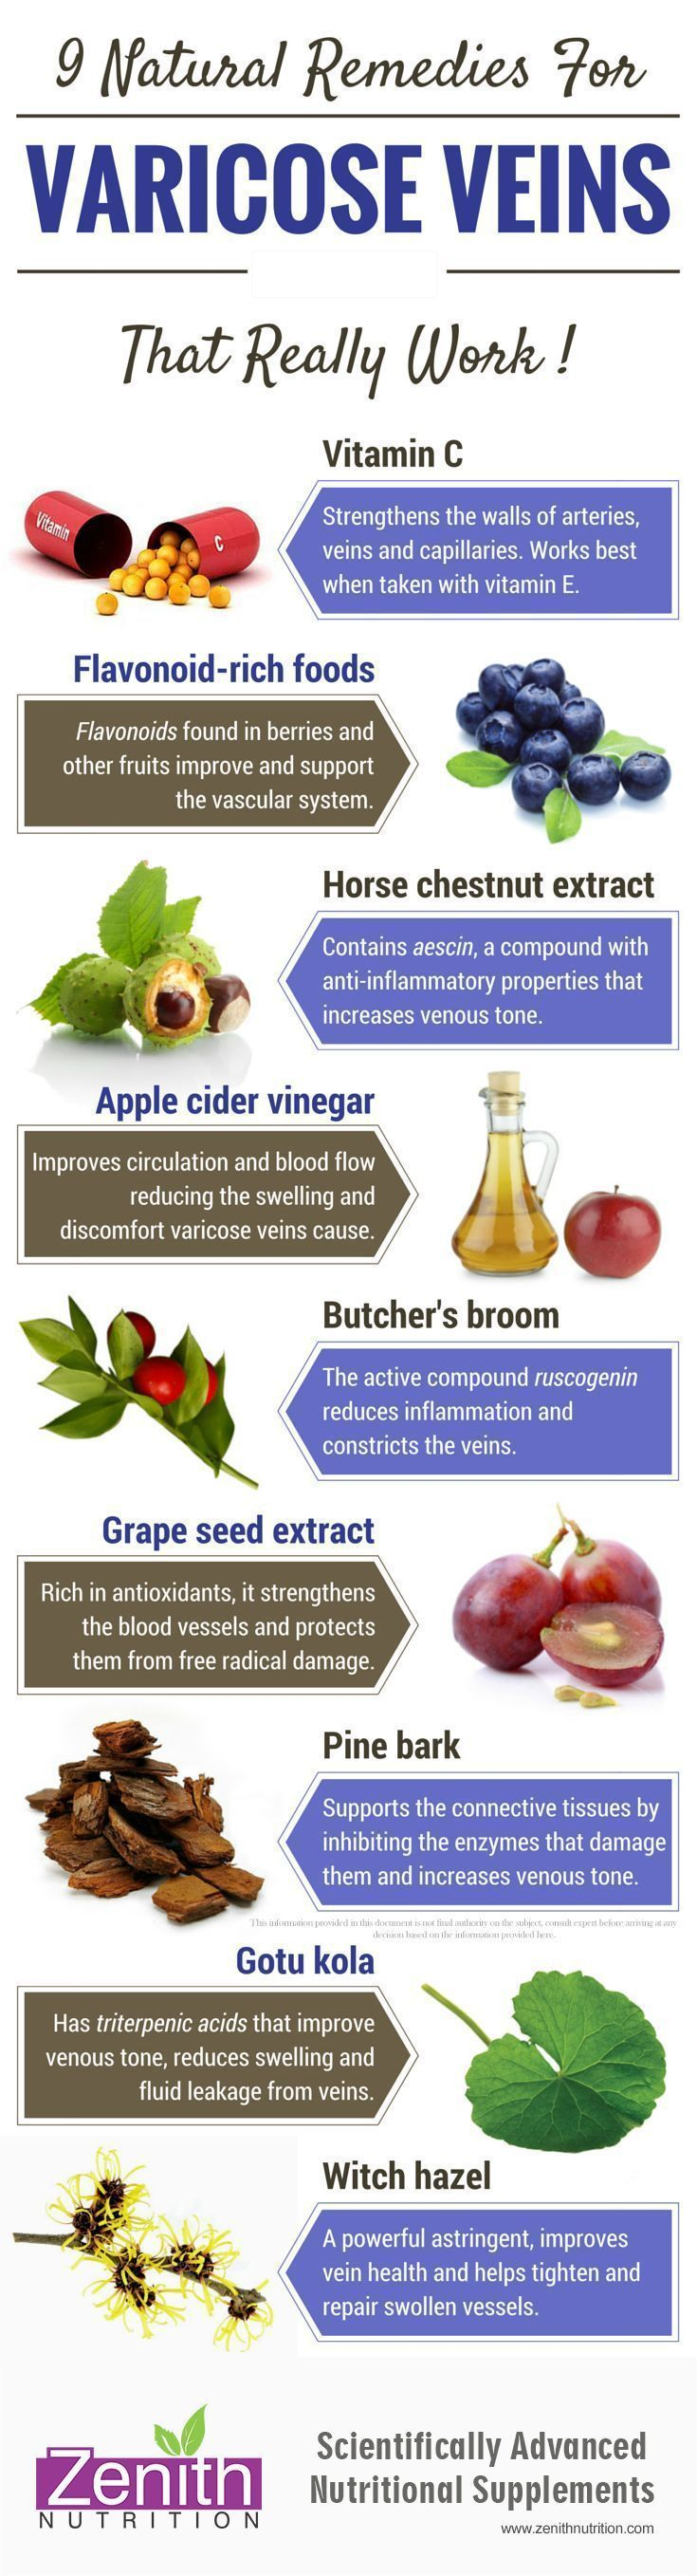 9 Natural Remedies for Varicose Veins. Vitamin C, Flavonoid-rich foods, Horse ch...